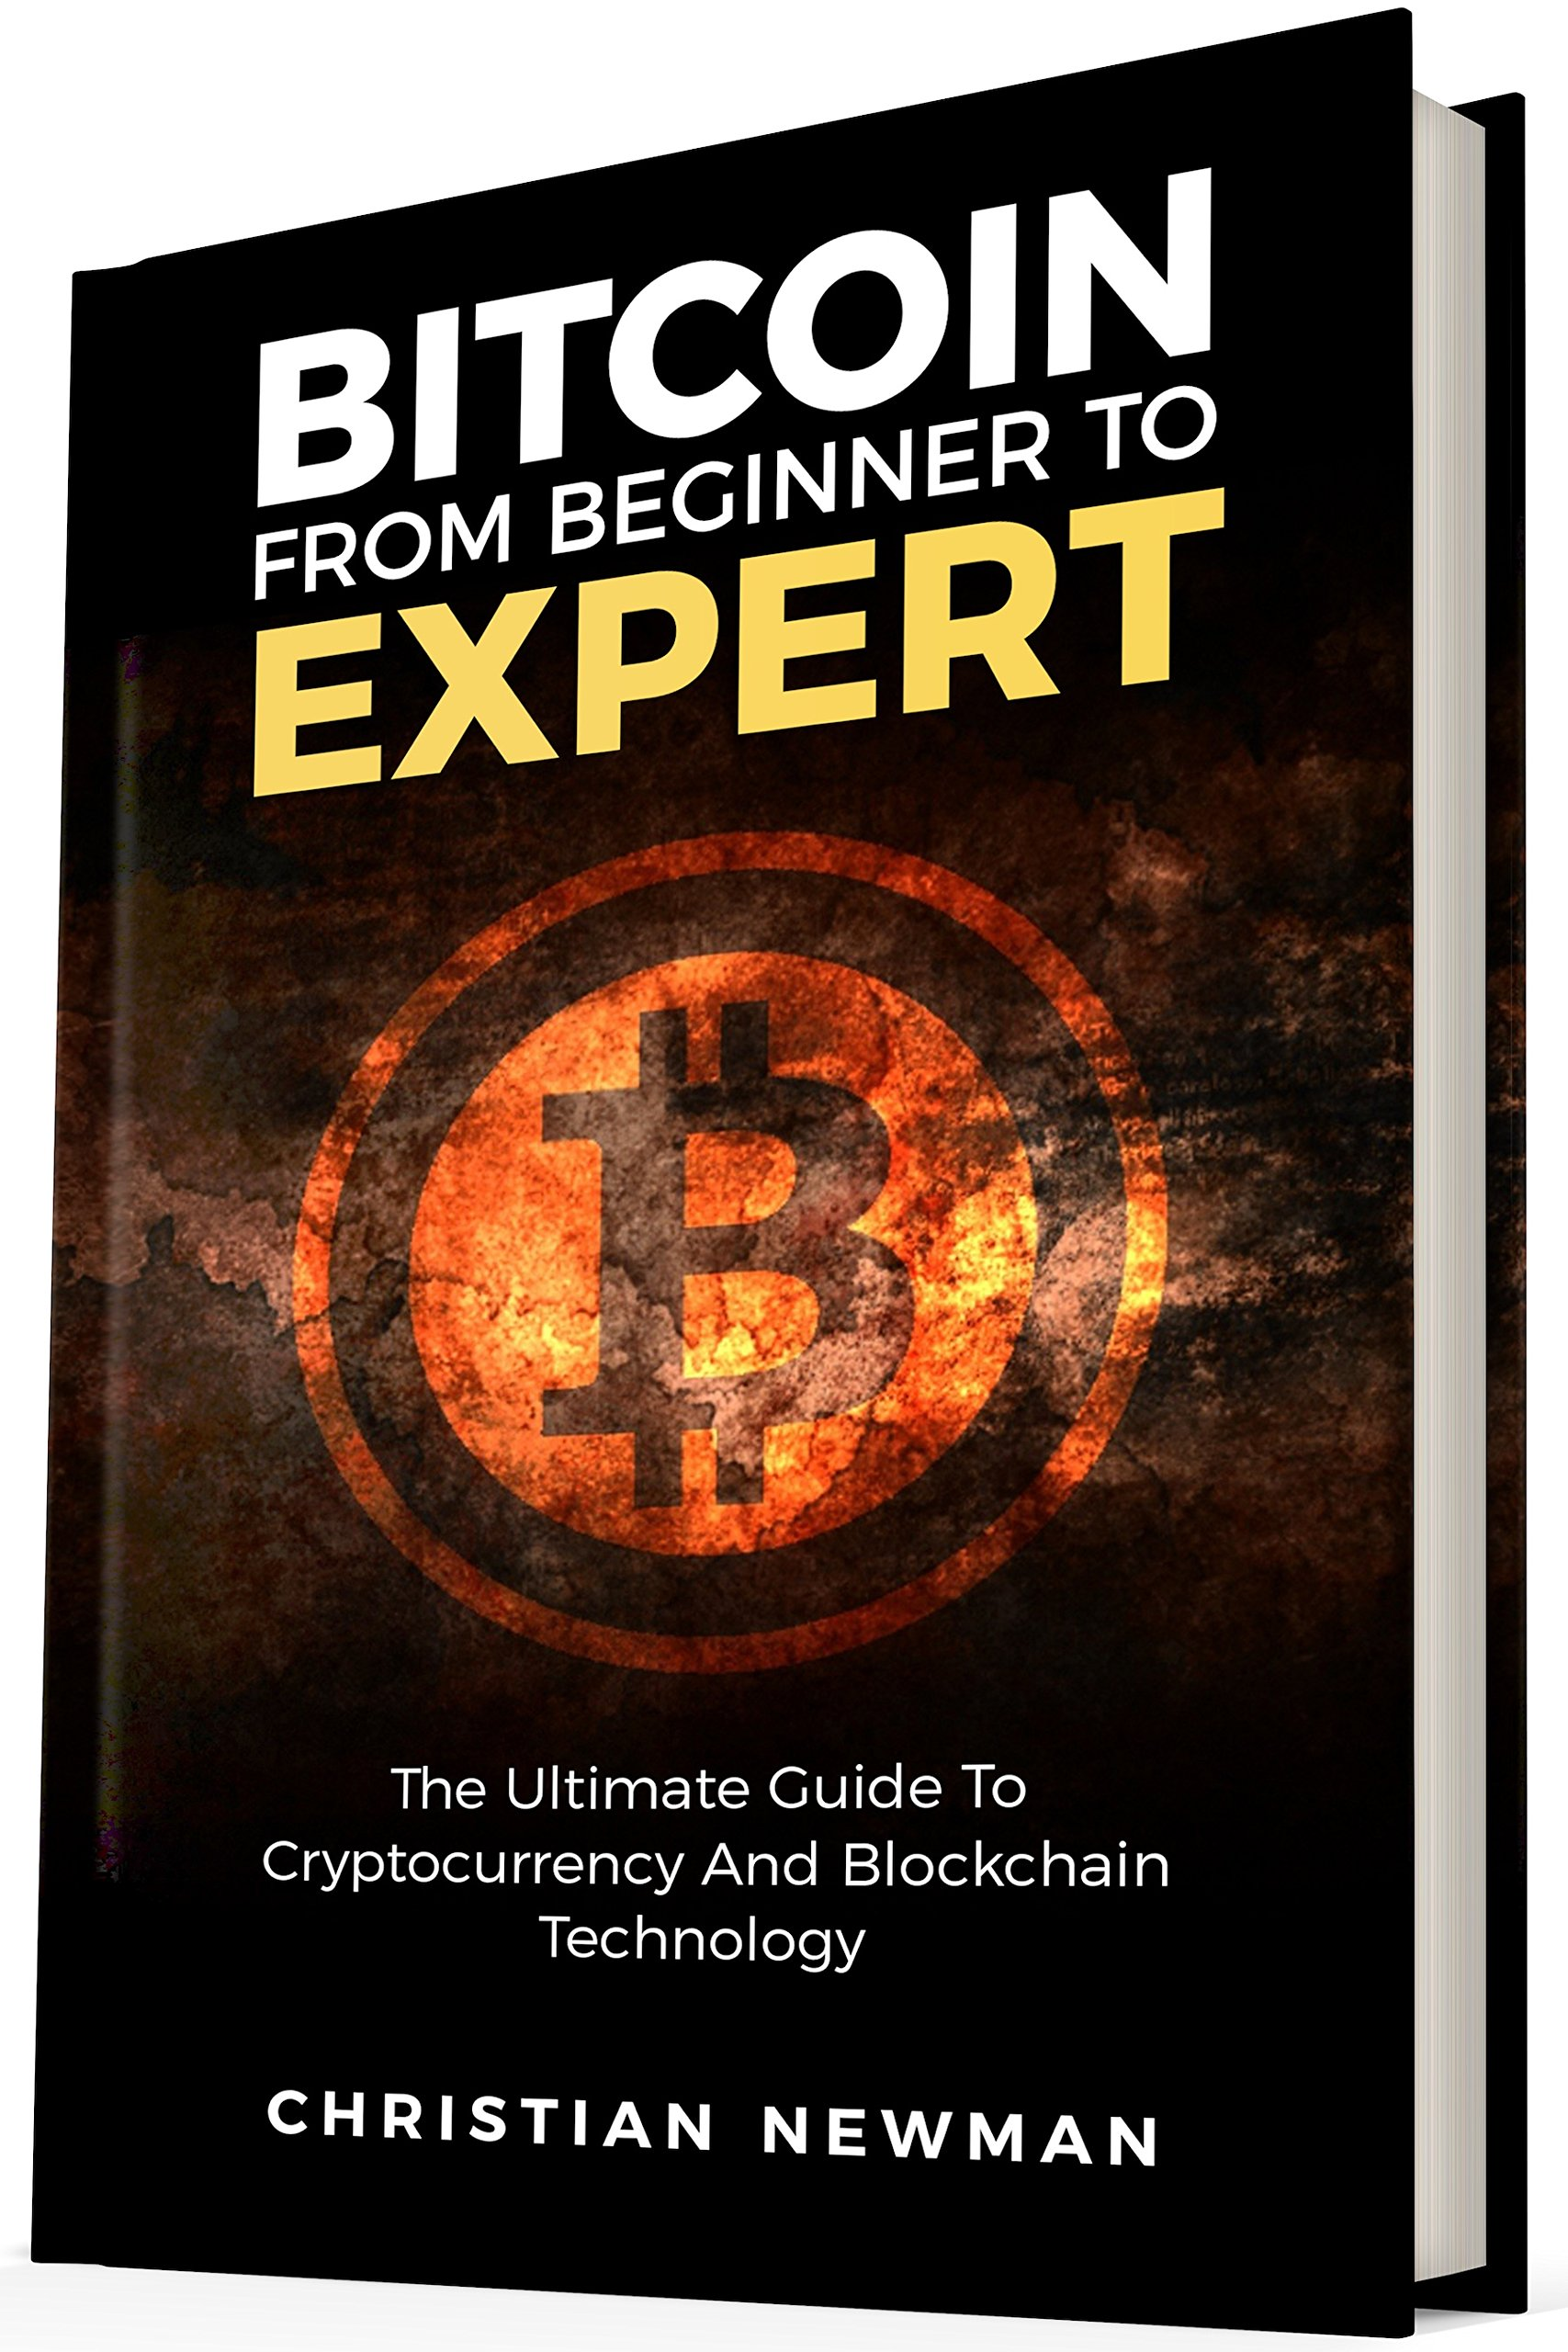 Bitcoin From Beginner To Expert: The Ultimate Guide To Cryptocurrency And Blockchain Technology (Cryptocurrency Trading Mining And Investment) (English Edition)